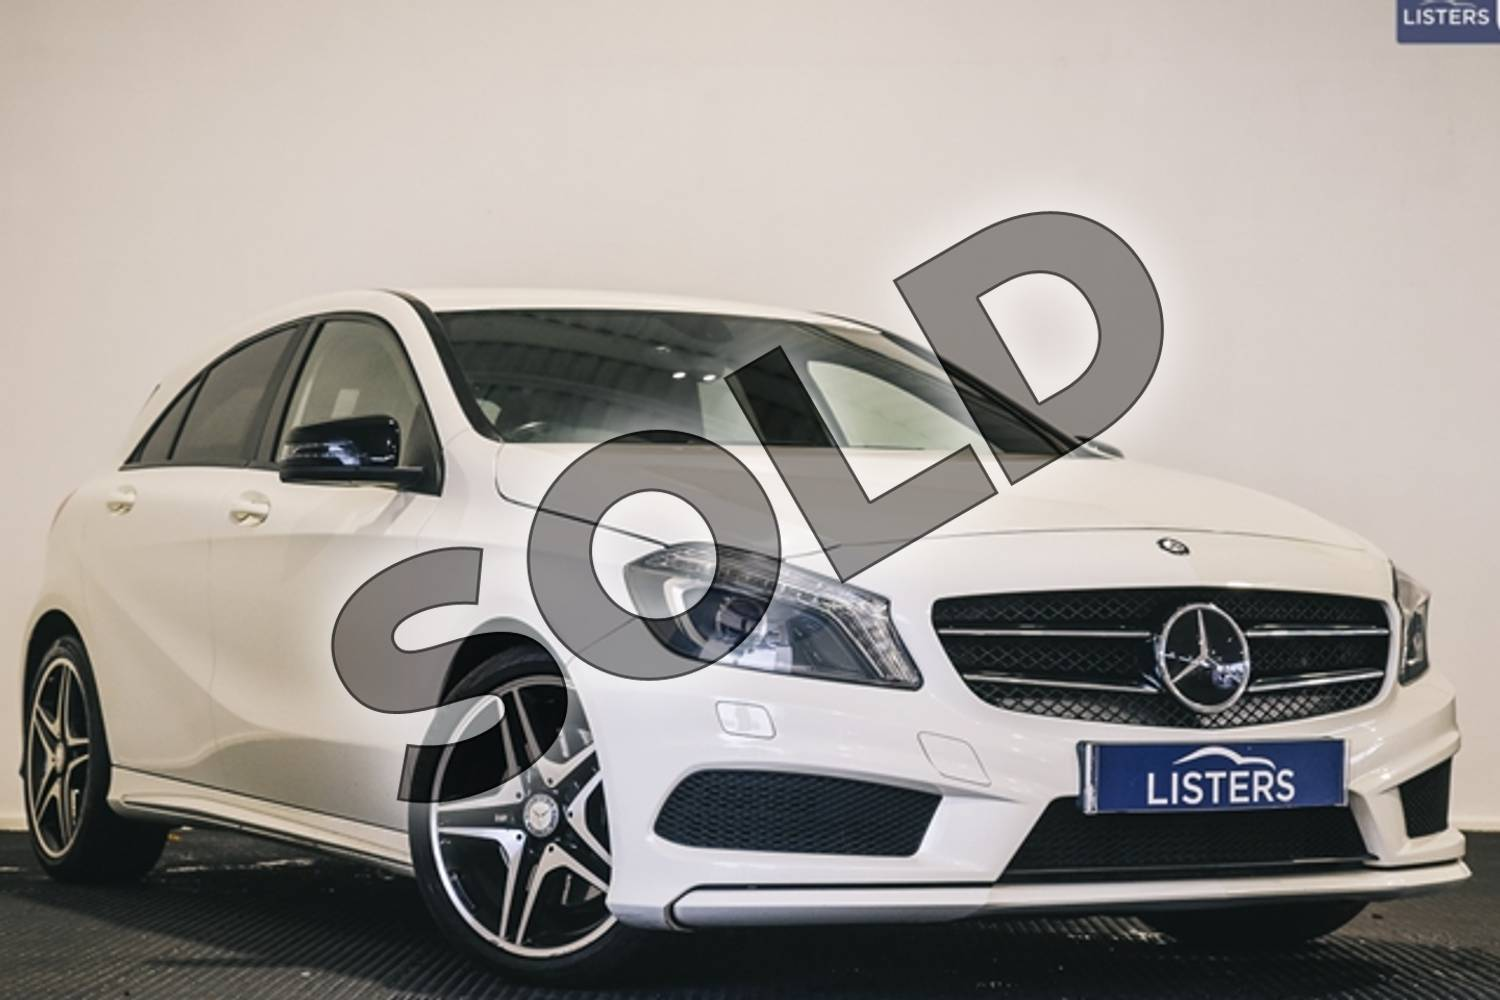 2014 Mercedes-Benz A Class Diesel Hatchback Diesel A220 CDI BlueEFFICIENCY AMG Sport 5dr Auto in Solid - Cirrus white at Listers U Stratford-upon-Avon